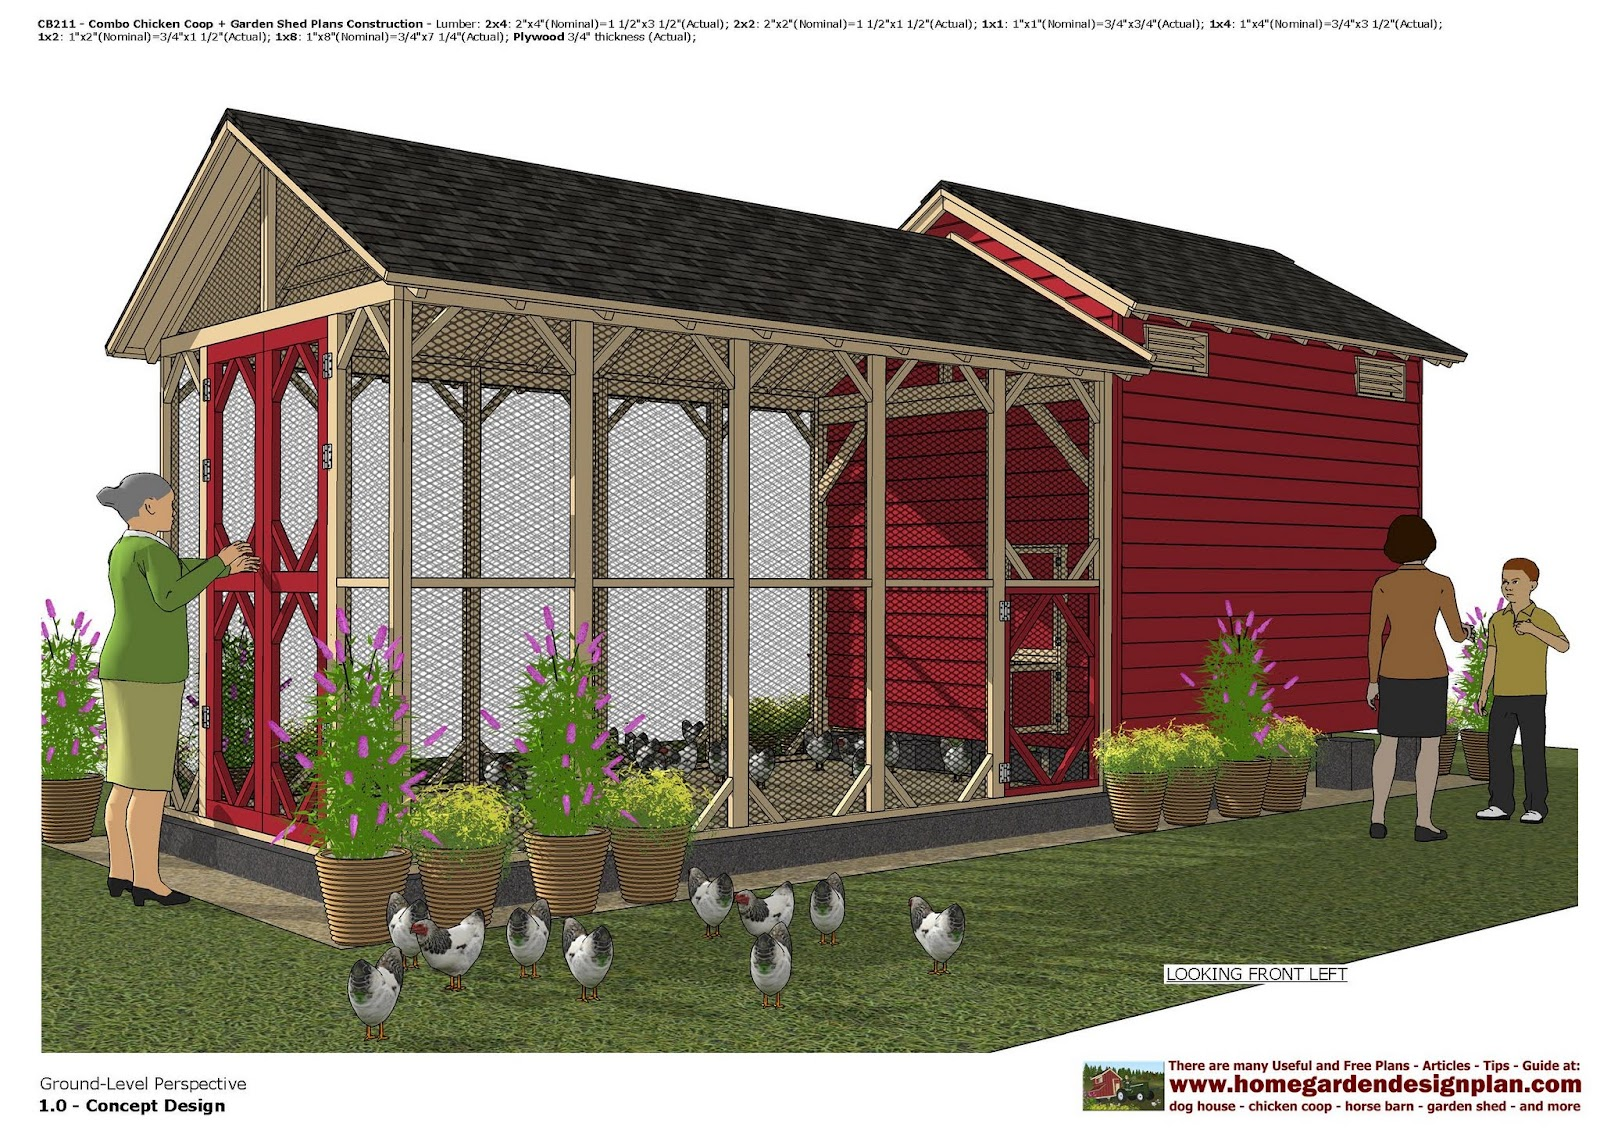 Garden Sheds 3 X 4 home garden plans: cb211 _ combo chicken coop + garden shed plans